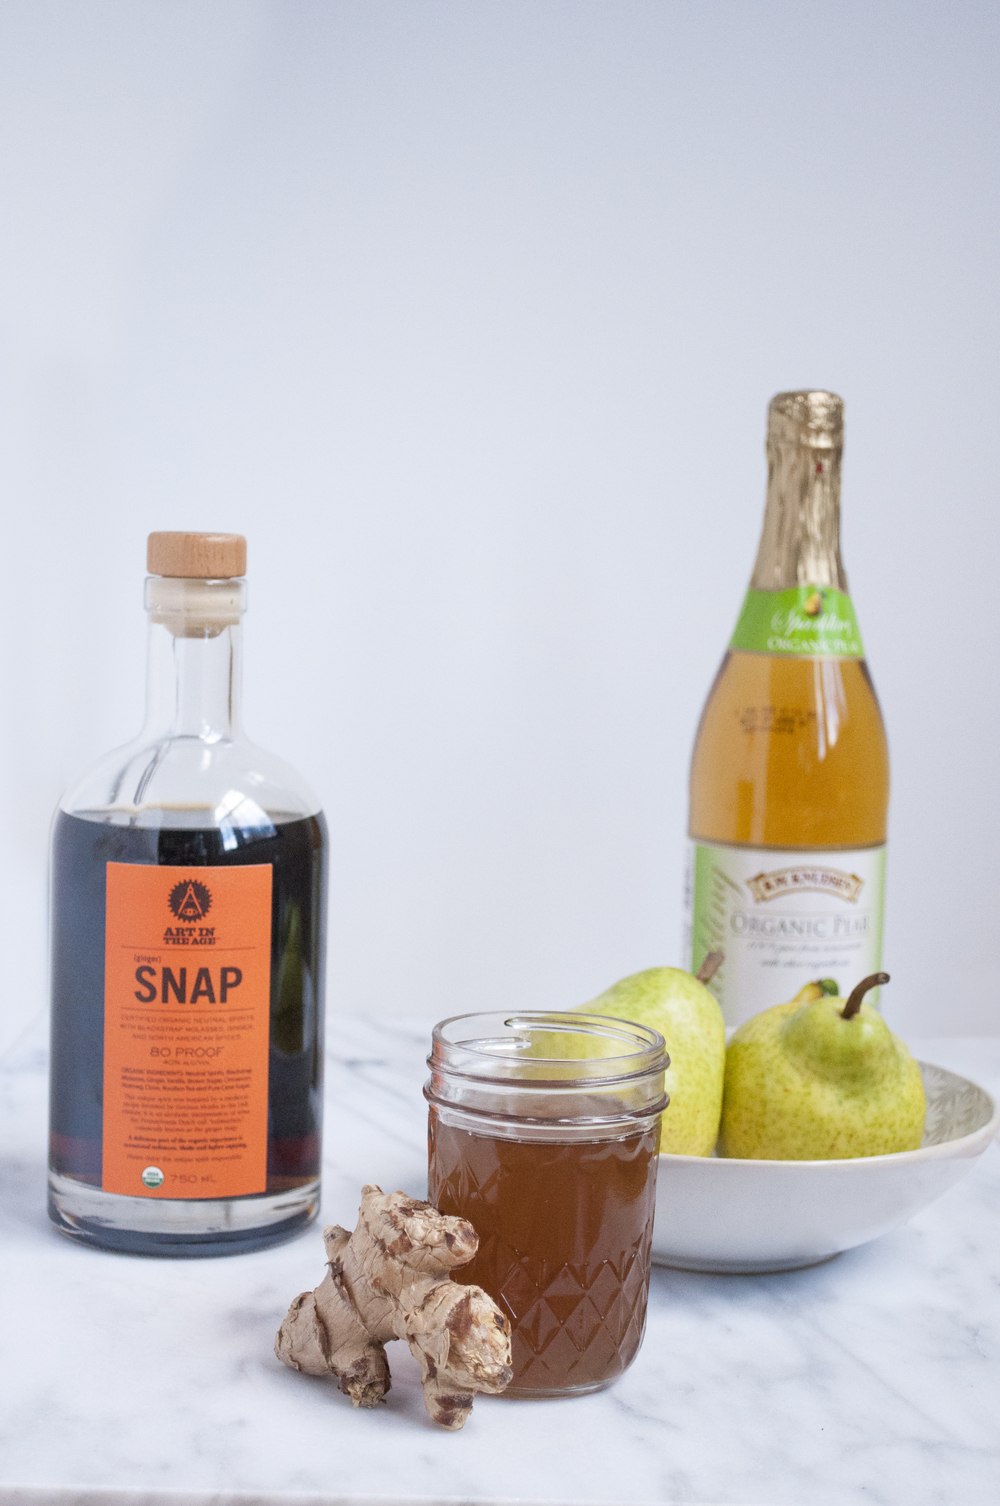 Summerfield Delight | Snappy Pear Cider Cocktail